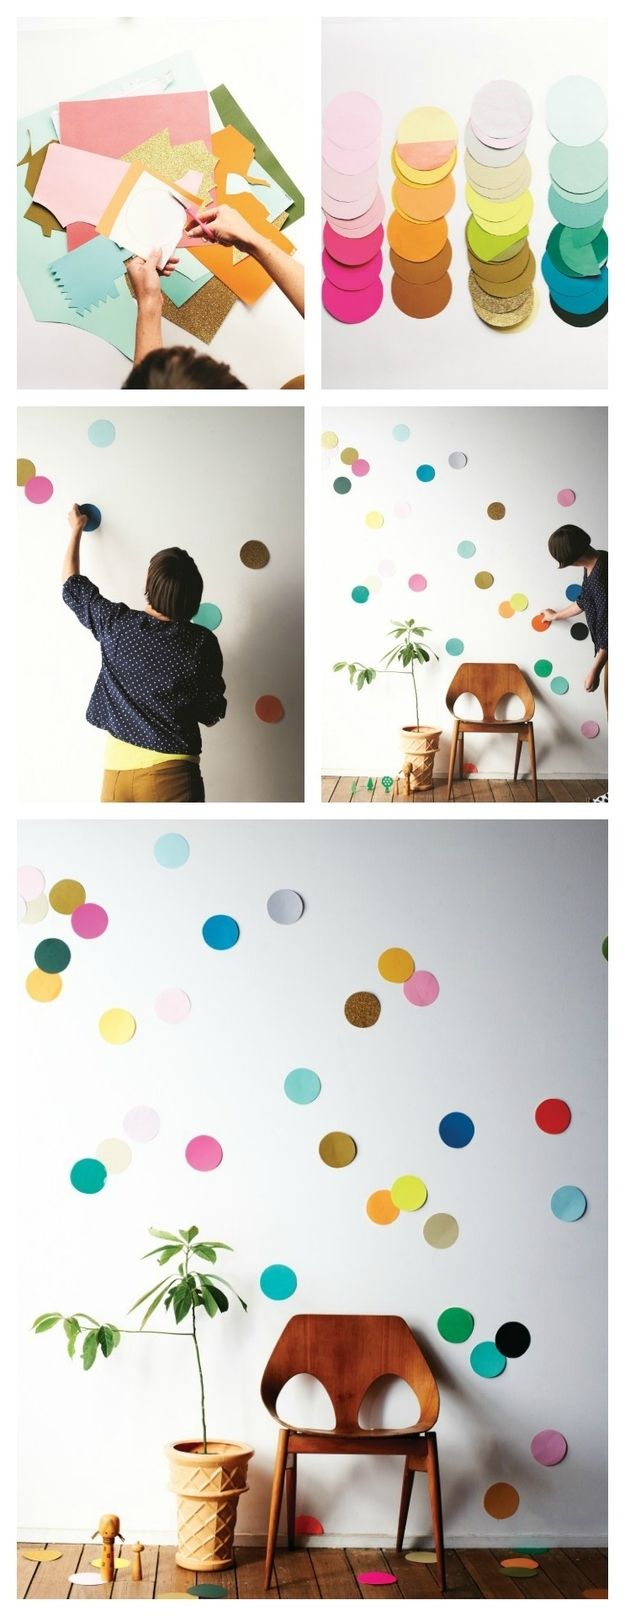 Konfettiwand - für das Kinderzimmer? | 26 Cute And Novel Ways To Use Confetti